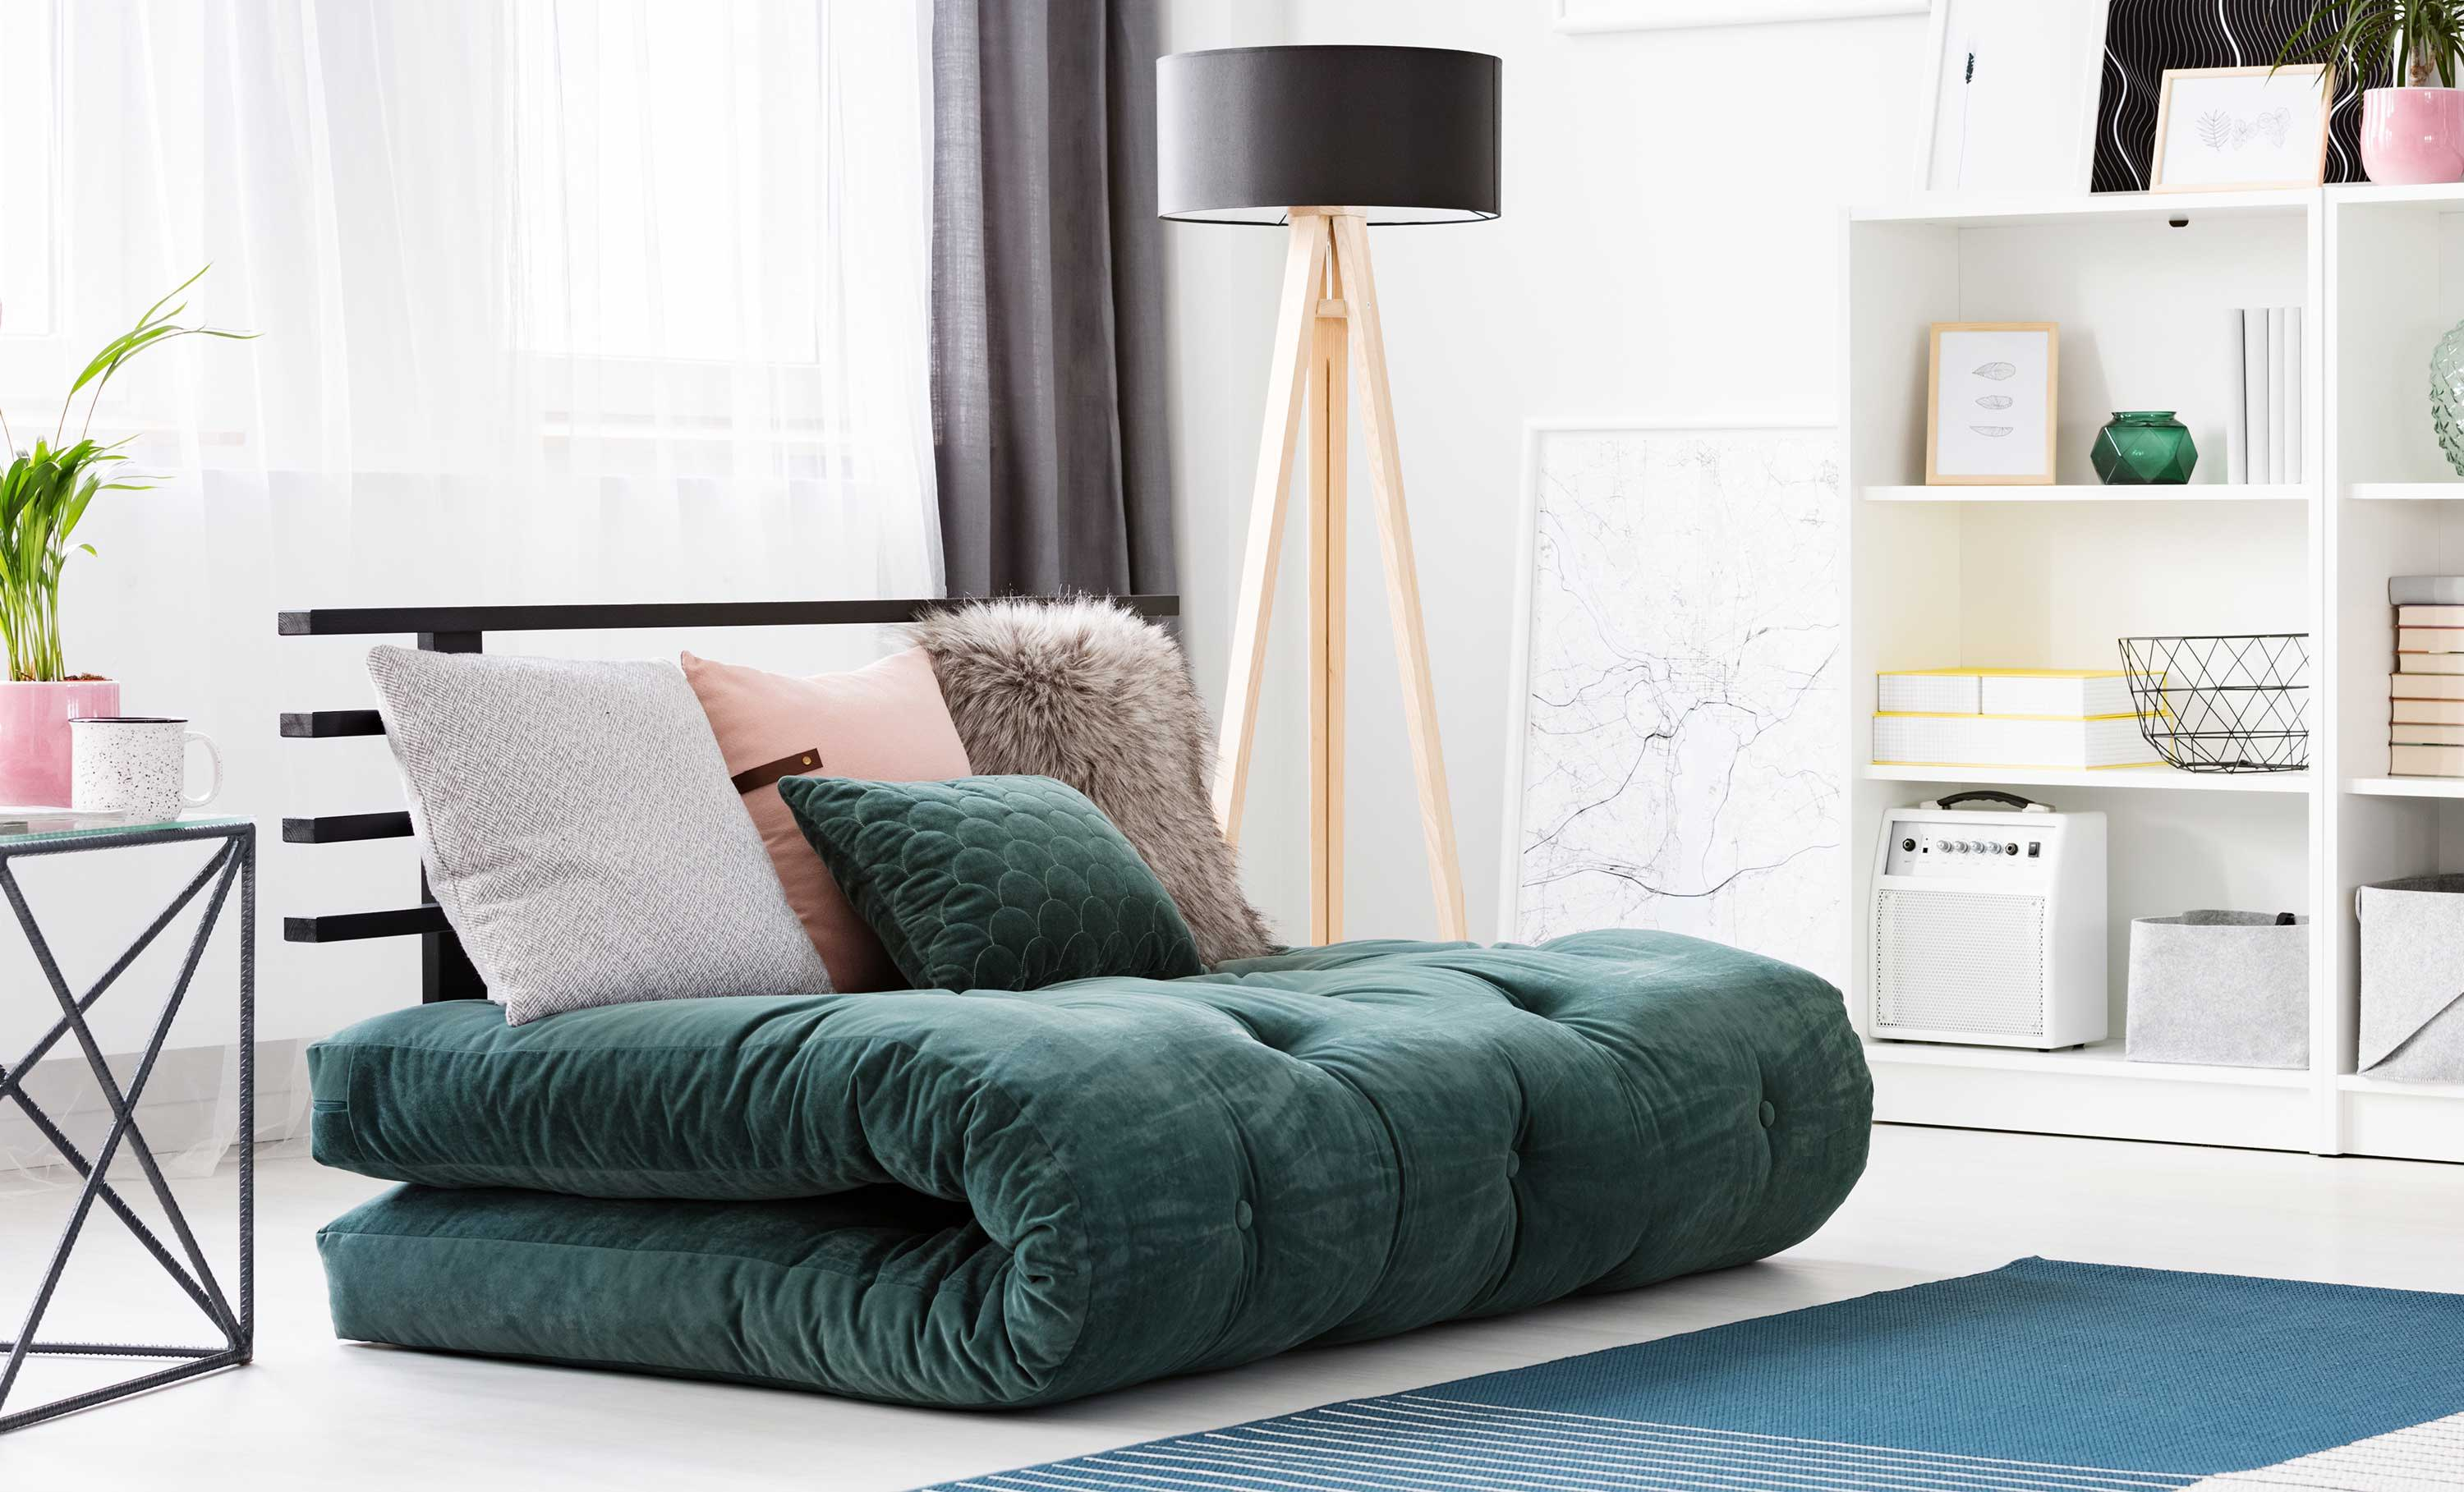 Futon Mattress Guide Benefits